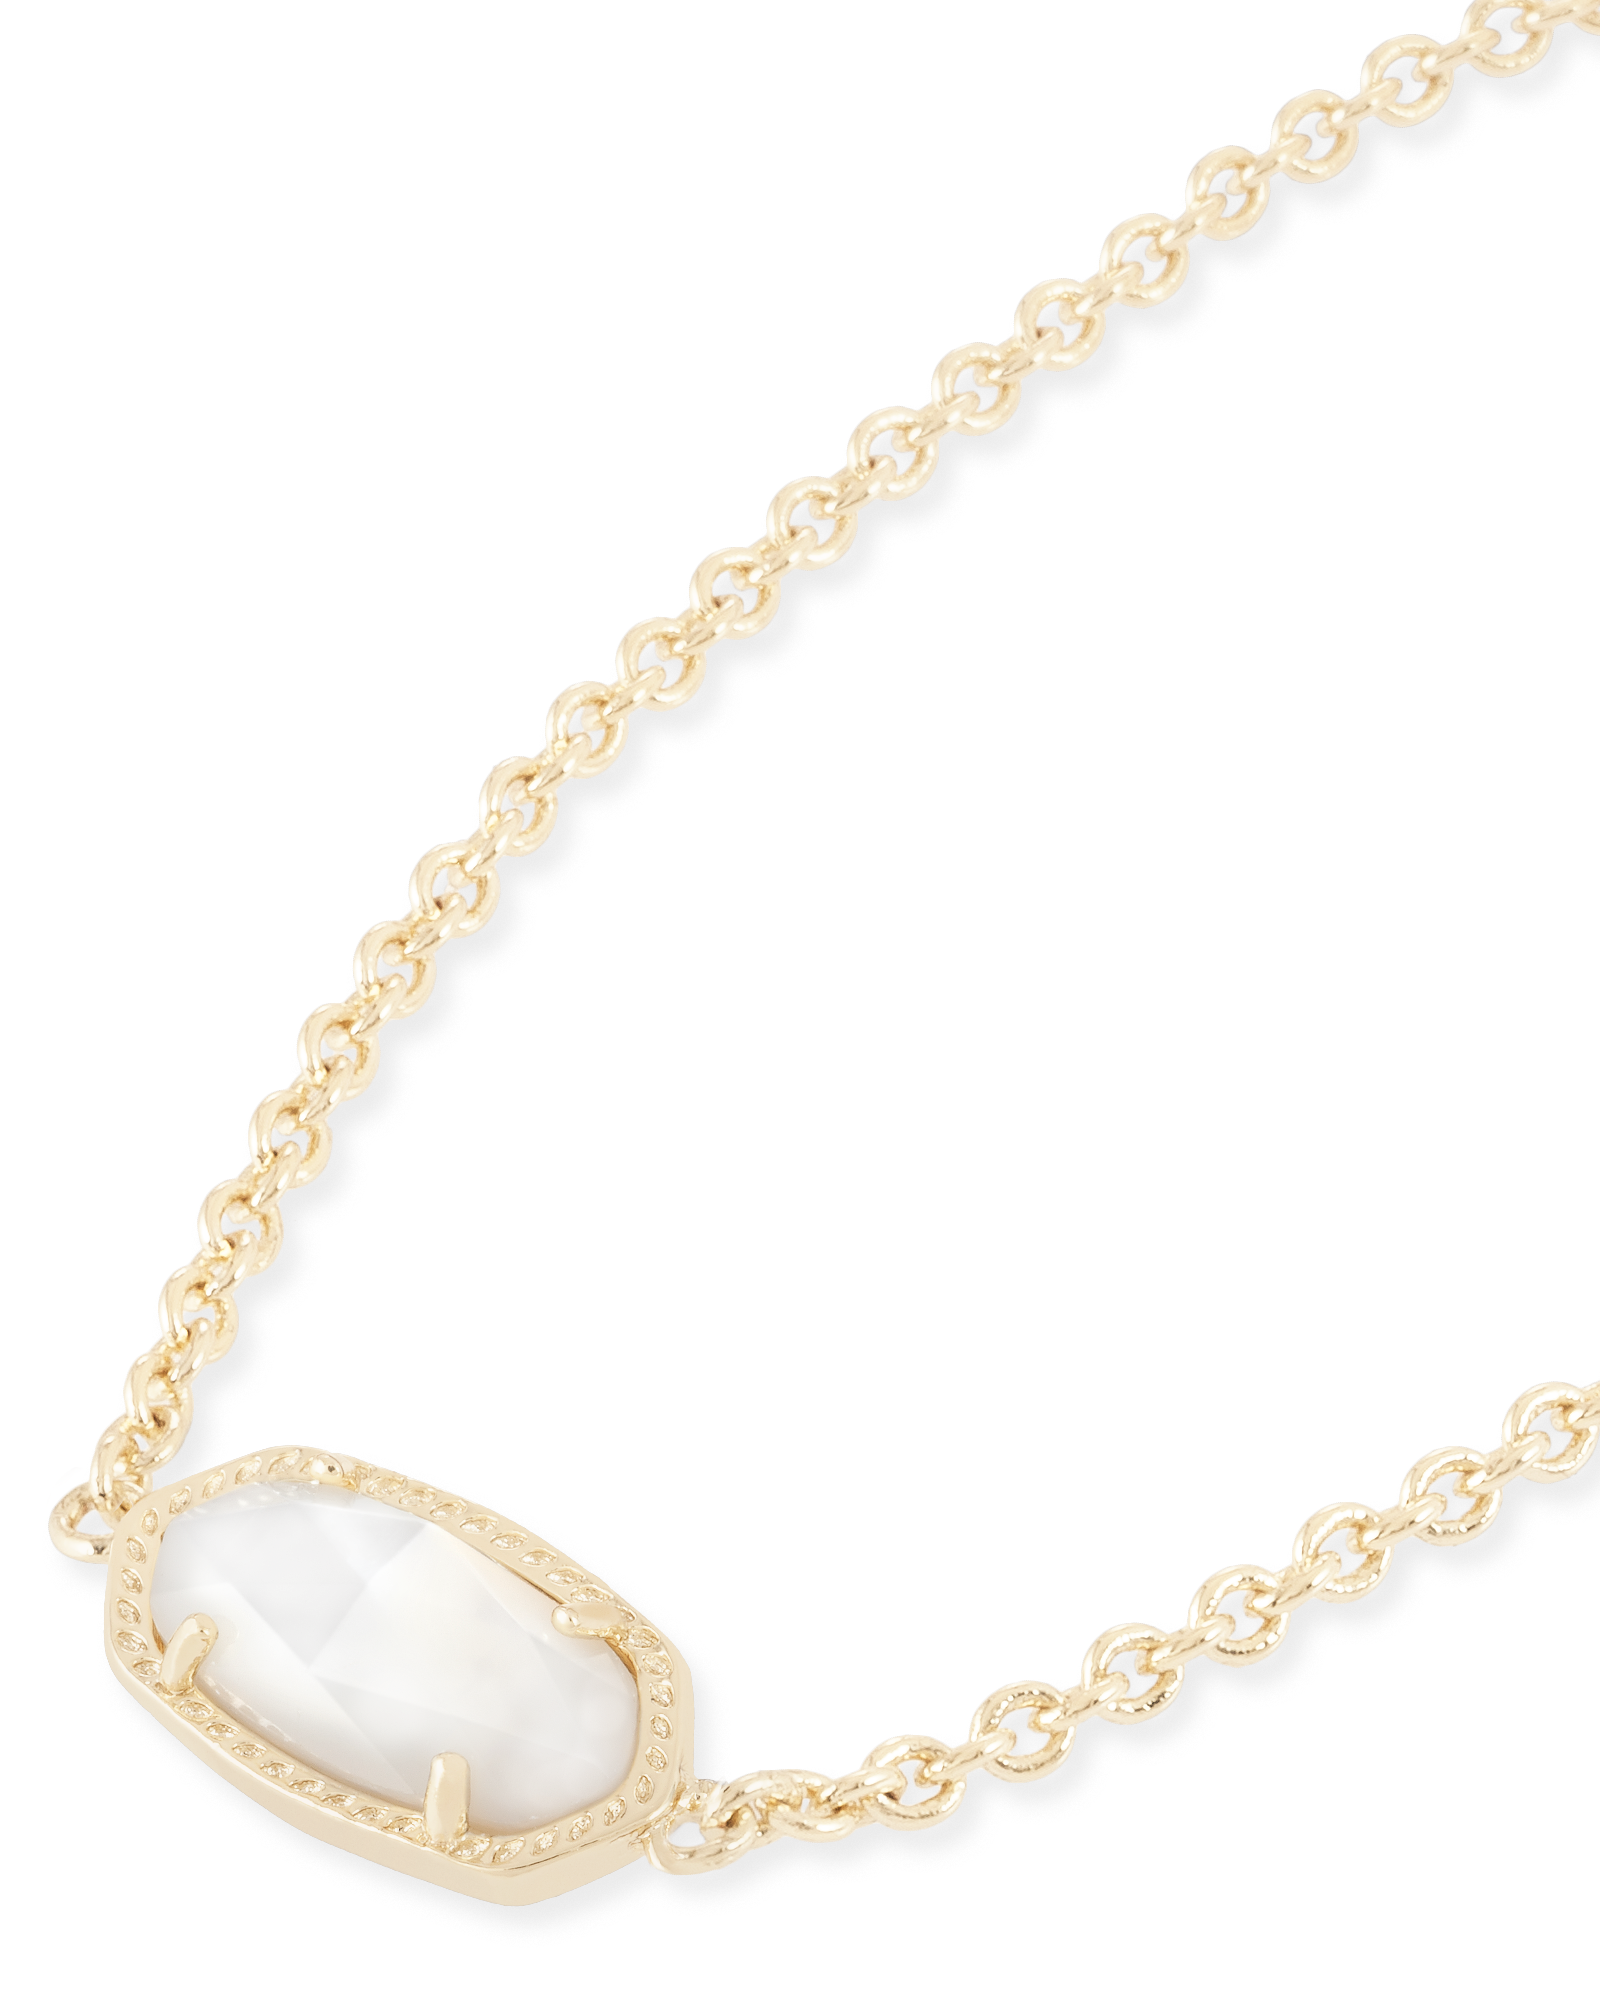 Elaina Adjustable Chain Bracelet in White Pearl